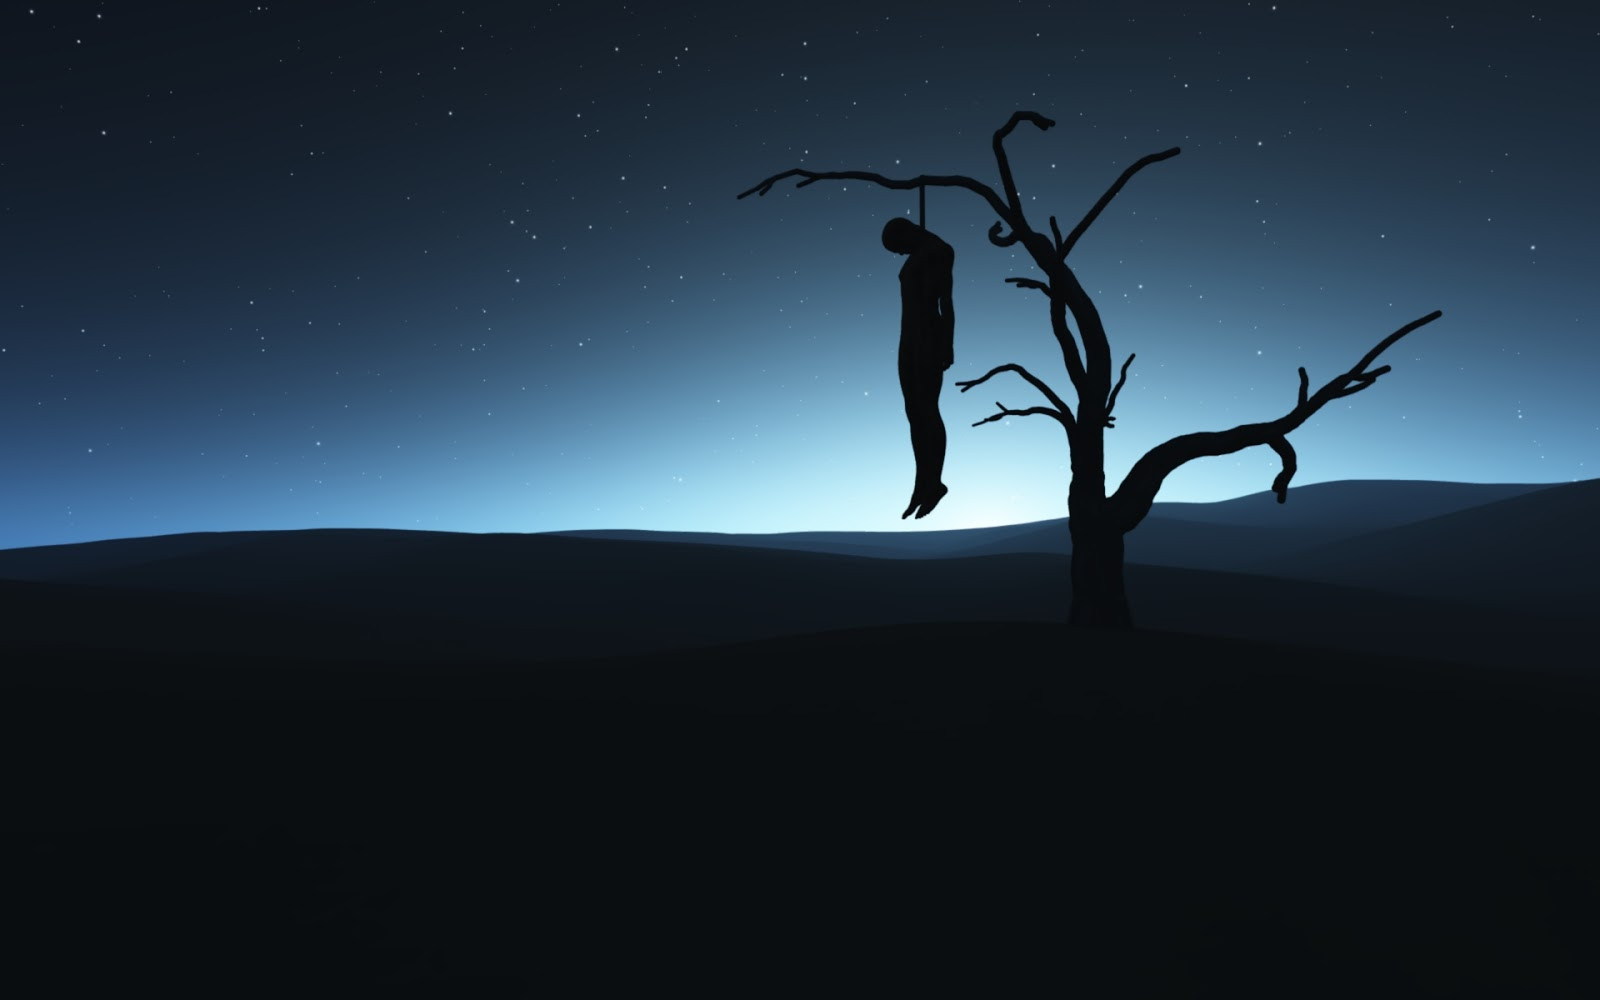 17-year-old boy commits suicide over alleged maltreatment in Ekiti